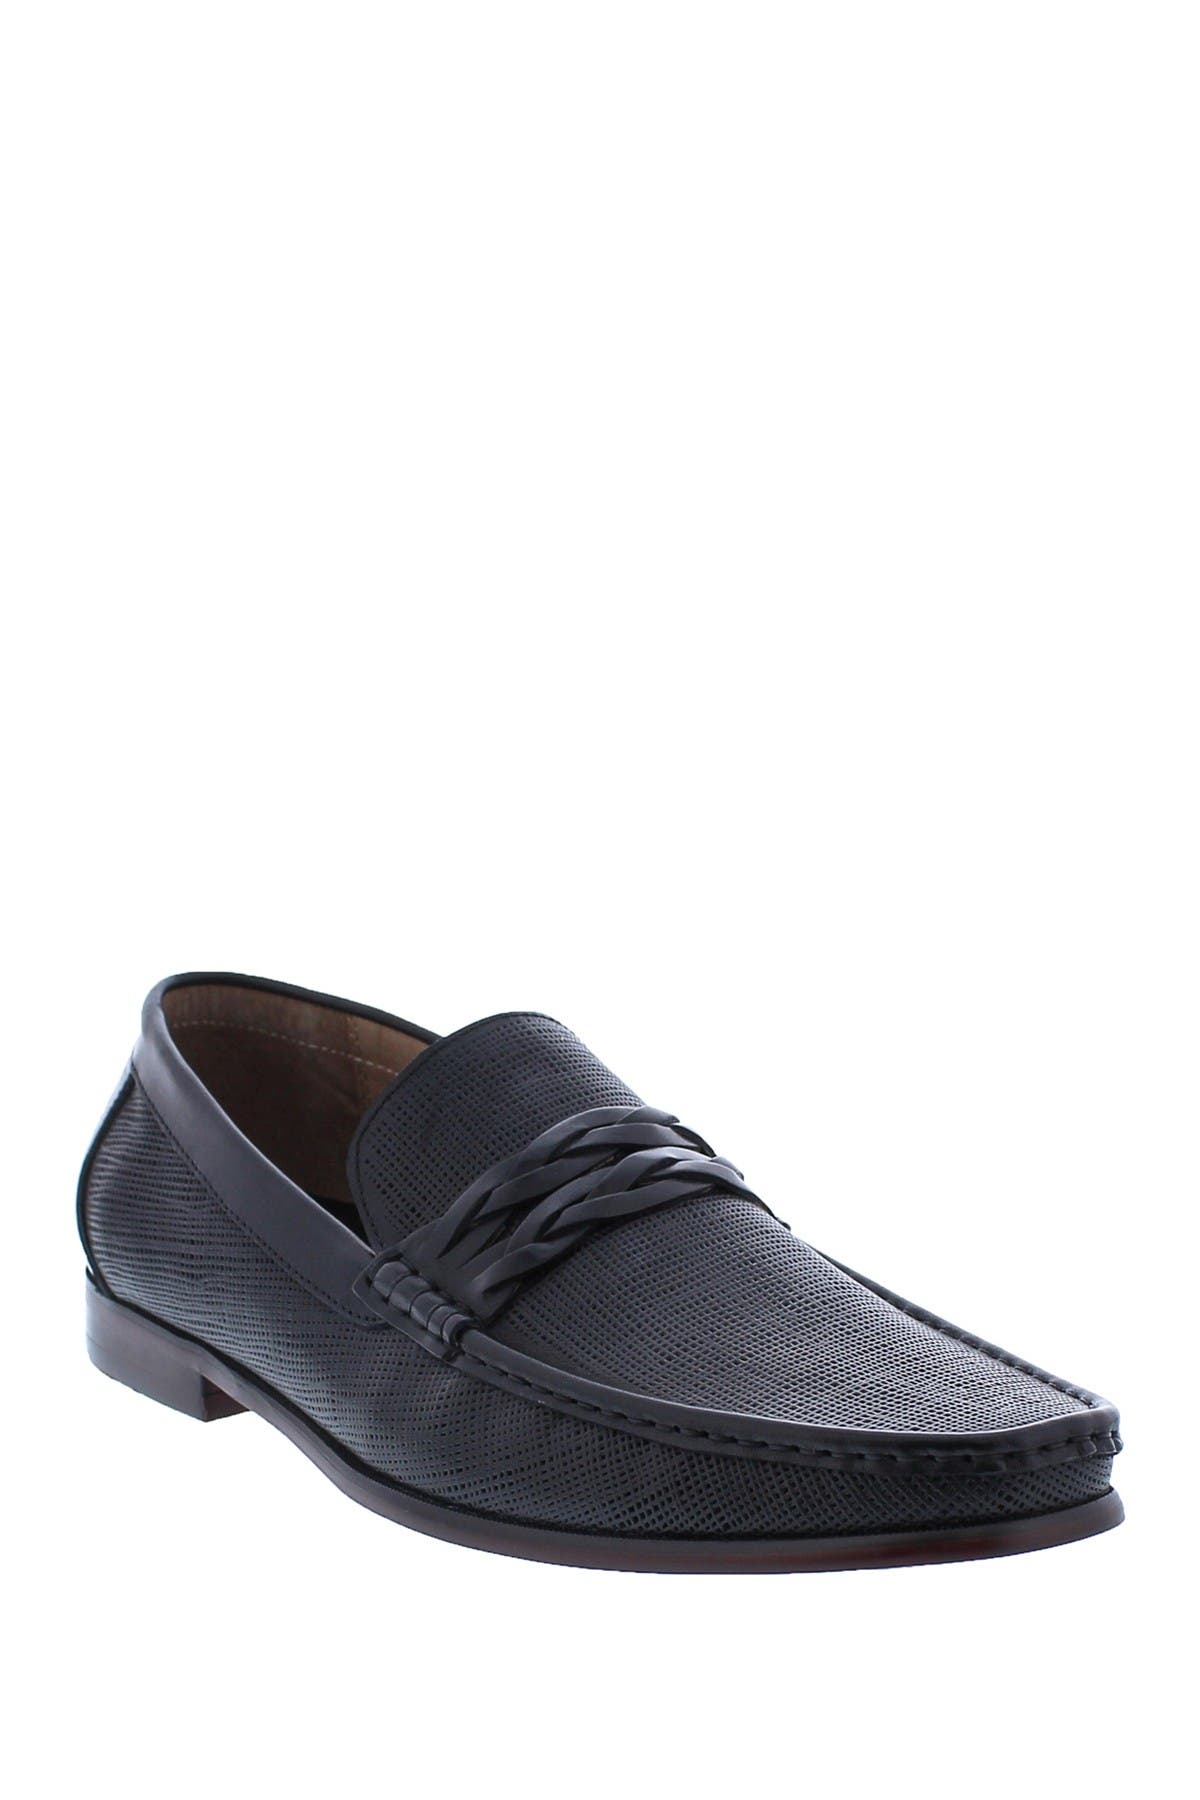 Image of Zanzara Aden Leather Loafer